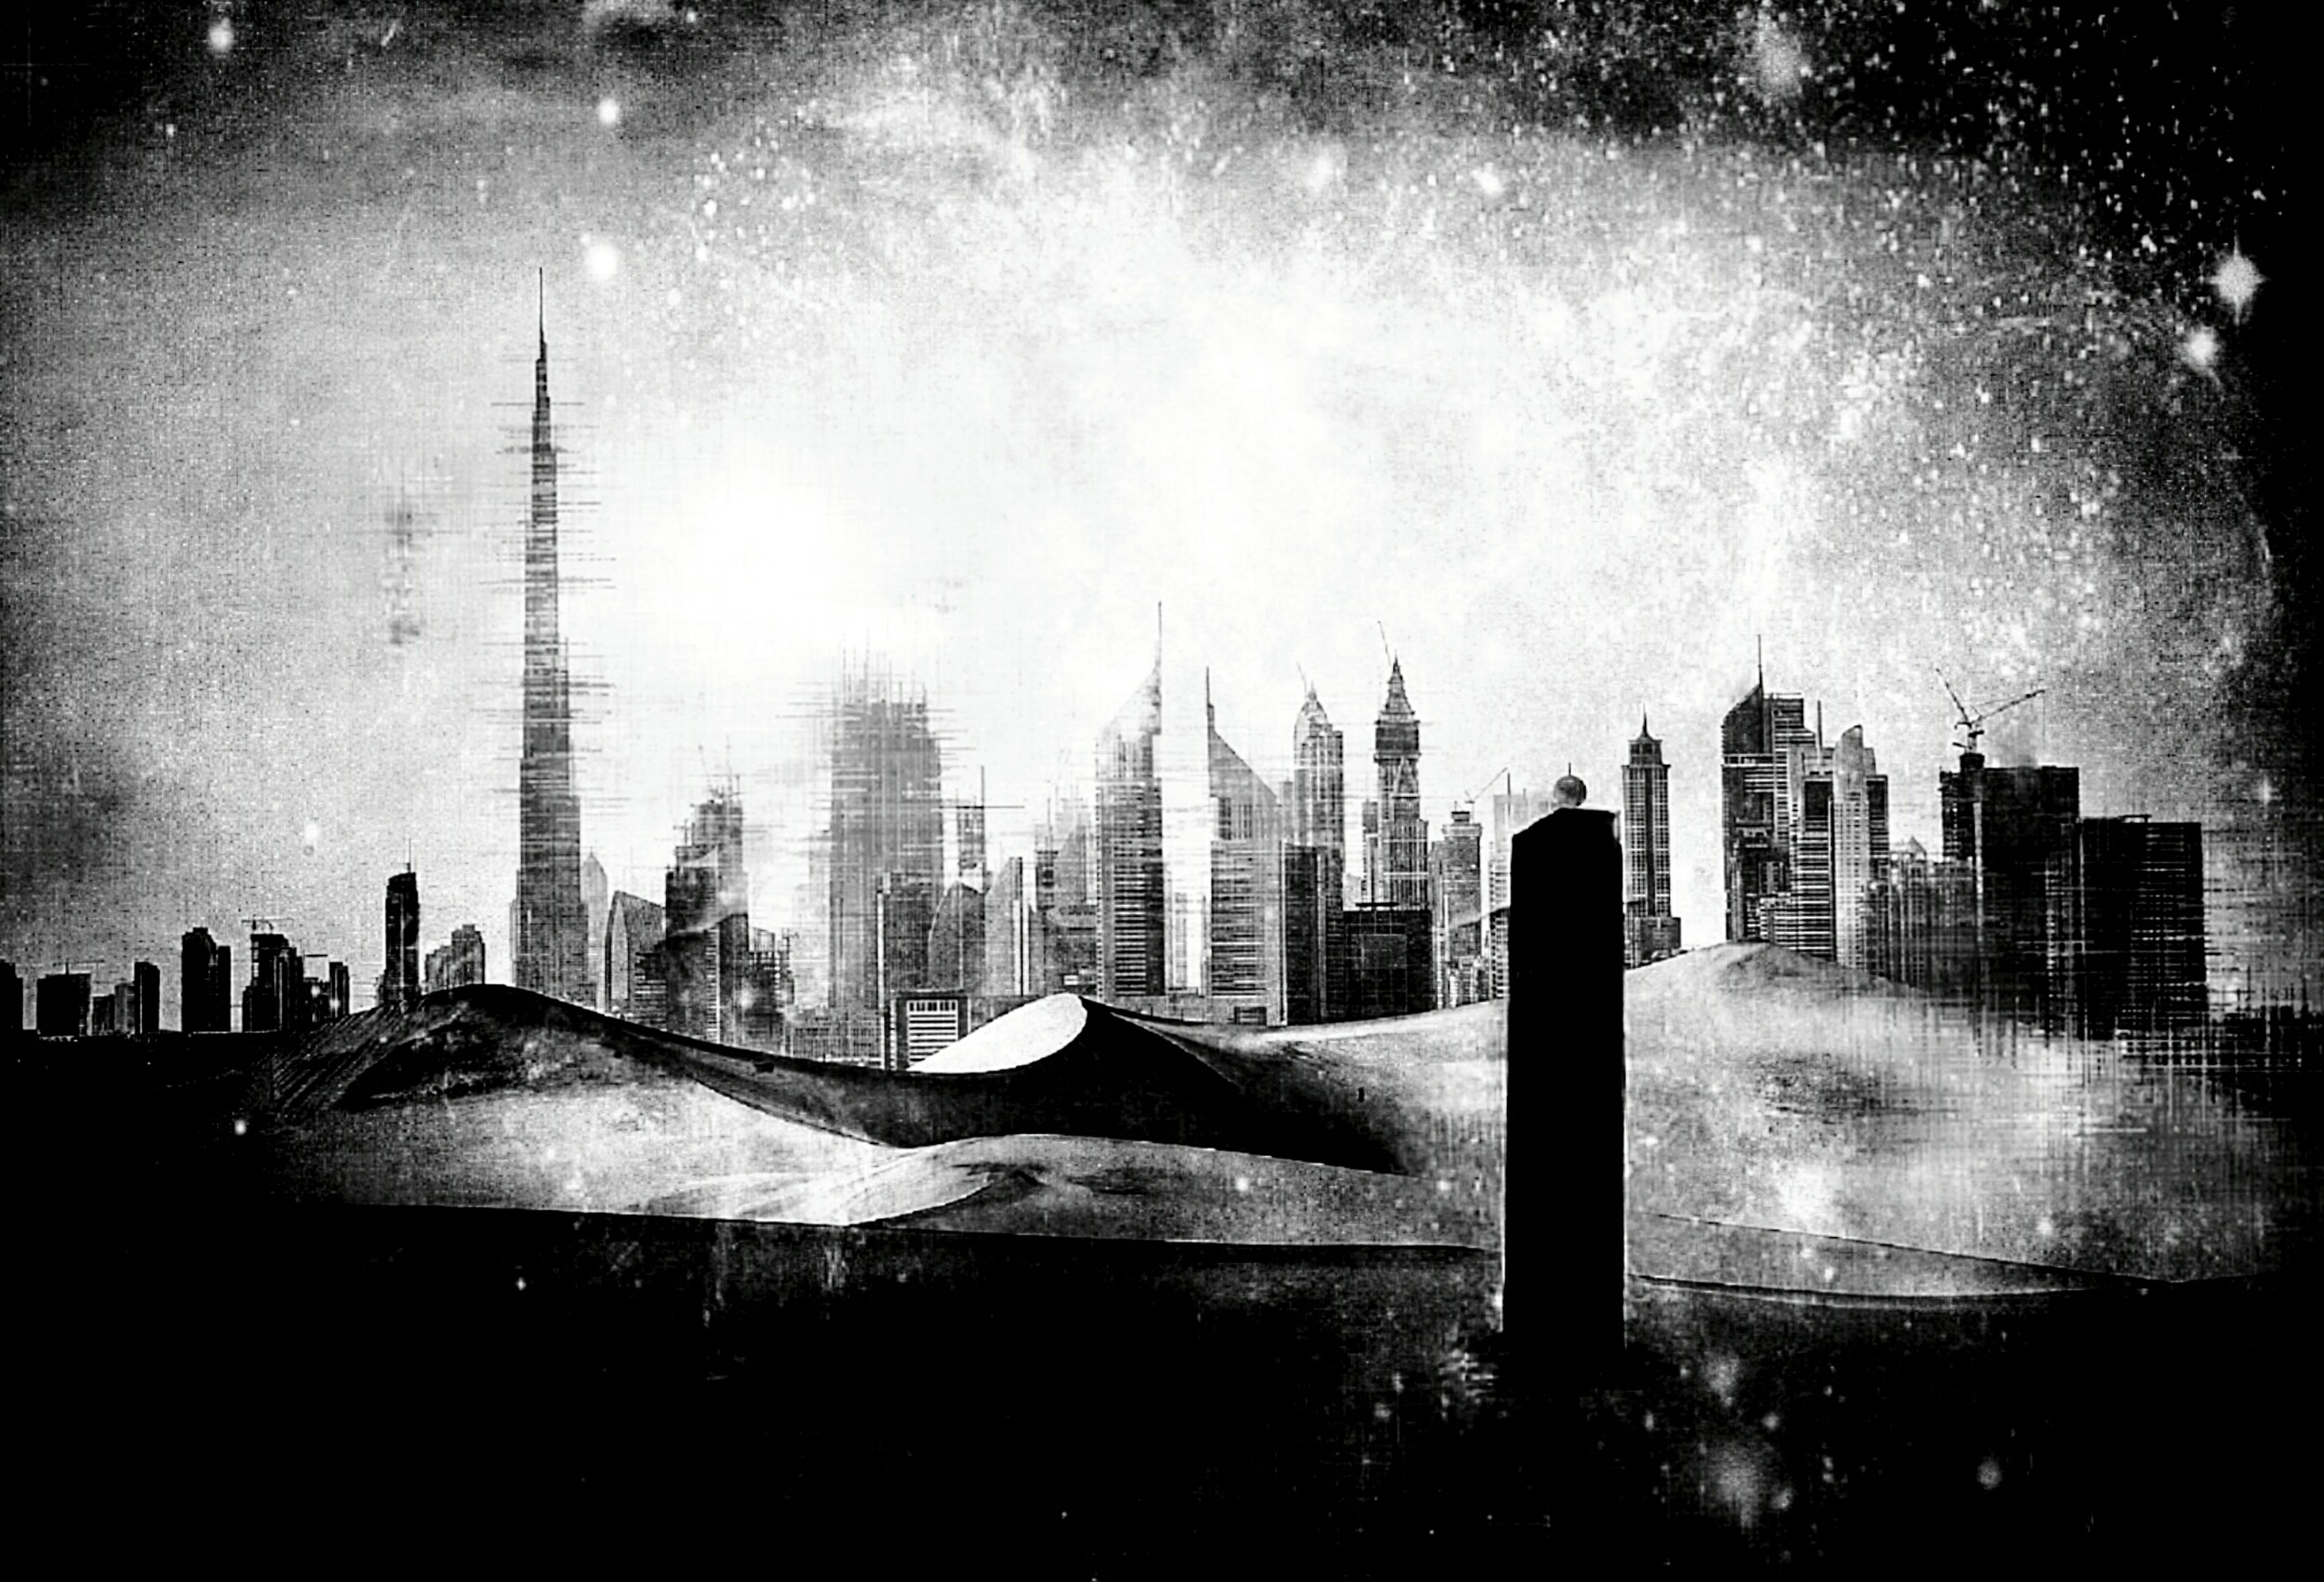 Monochrome Variation City Dont Cry Tall - High Ile De Sable Storm The Storm Torch Pour L'amour Du Risque Auto Post Production Filter One Vision For Nothing The Color Of Business